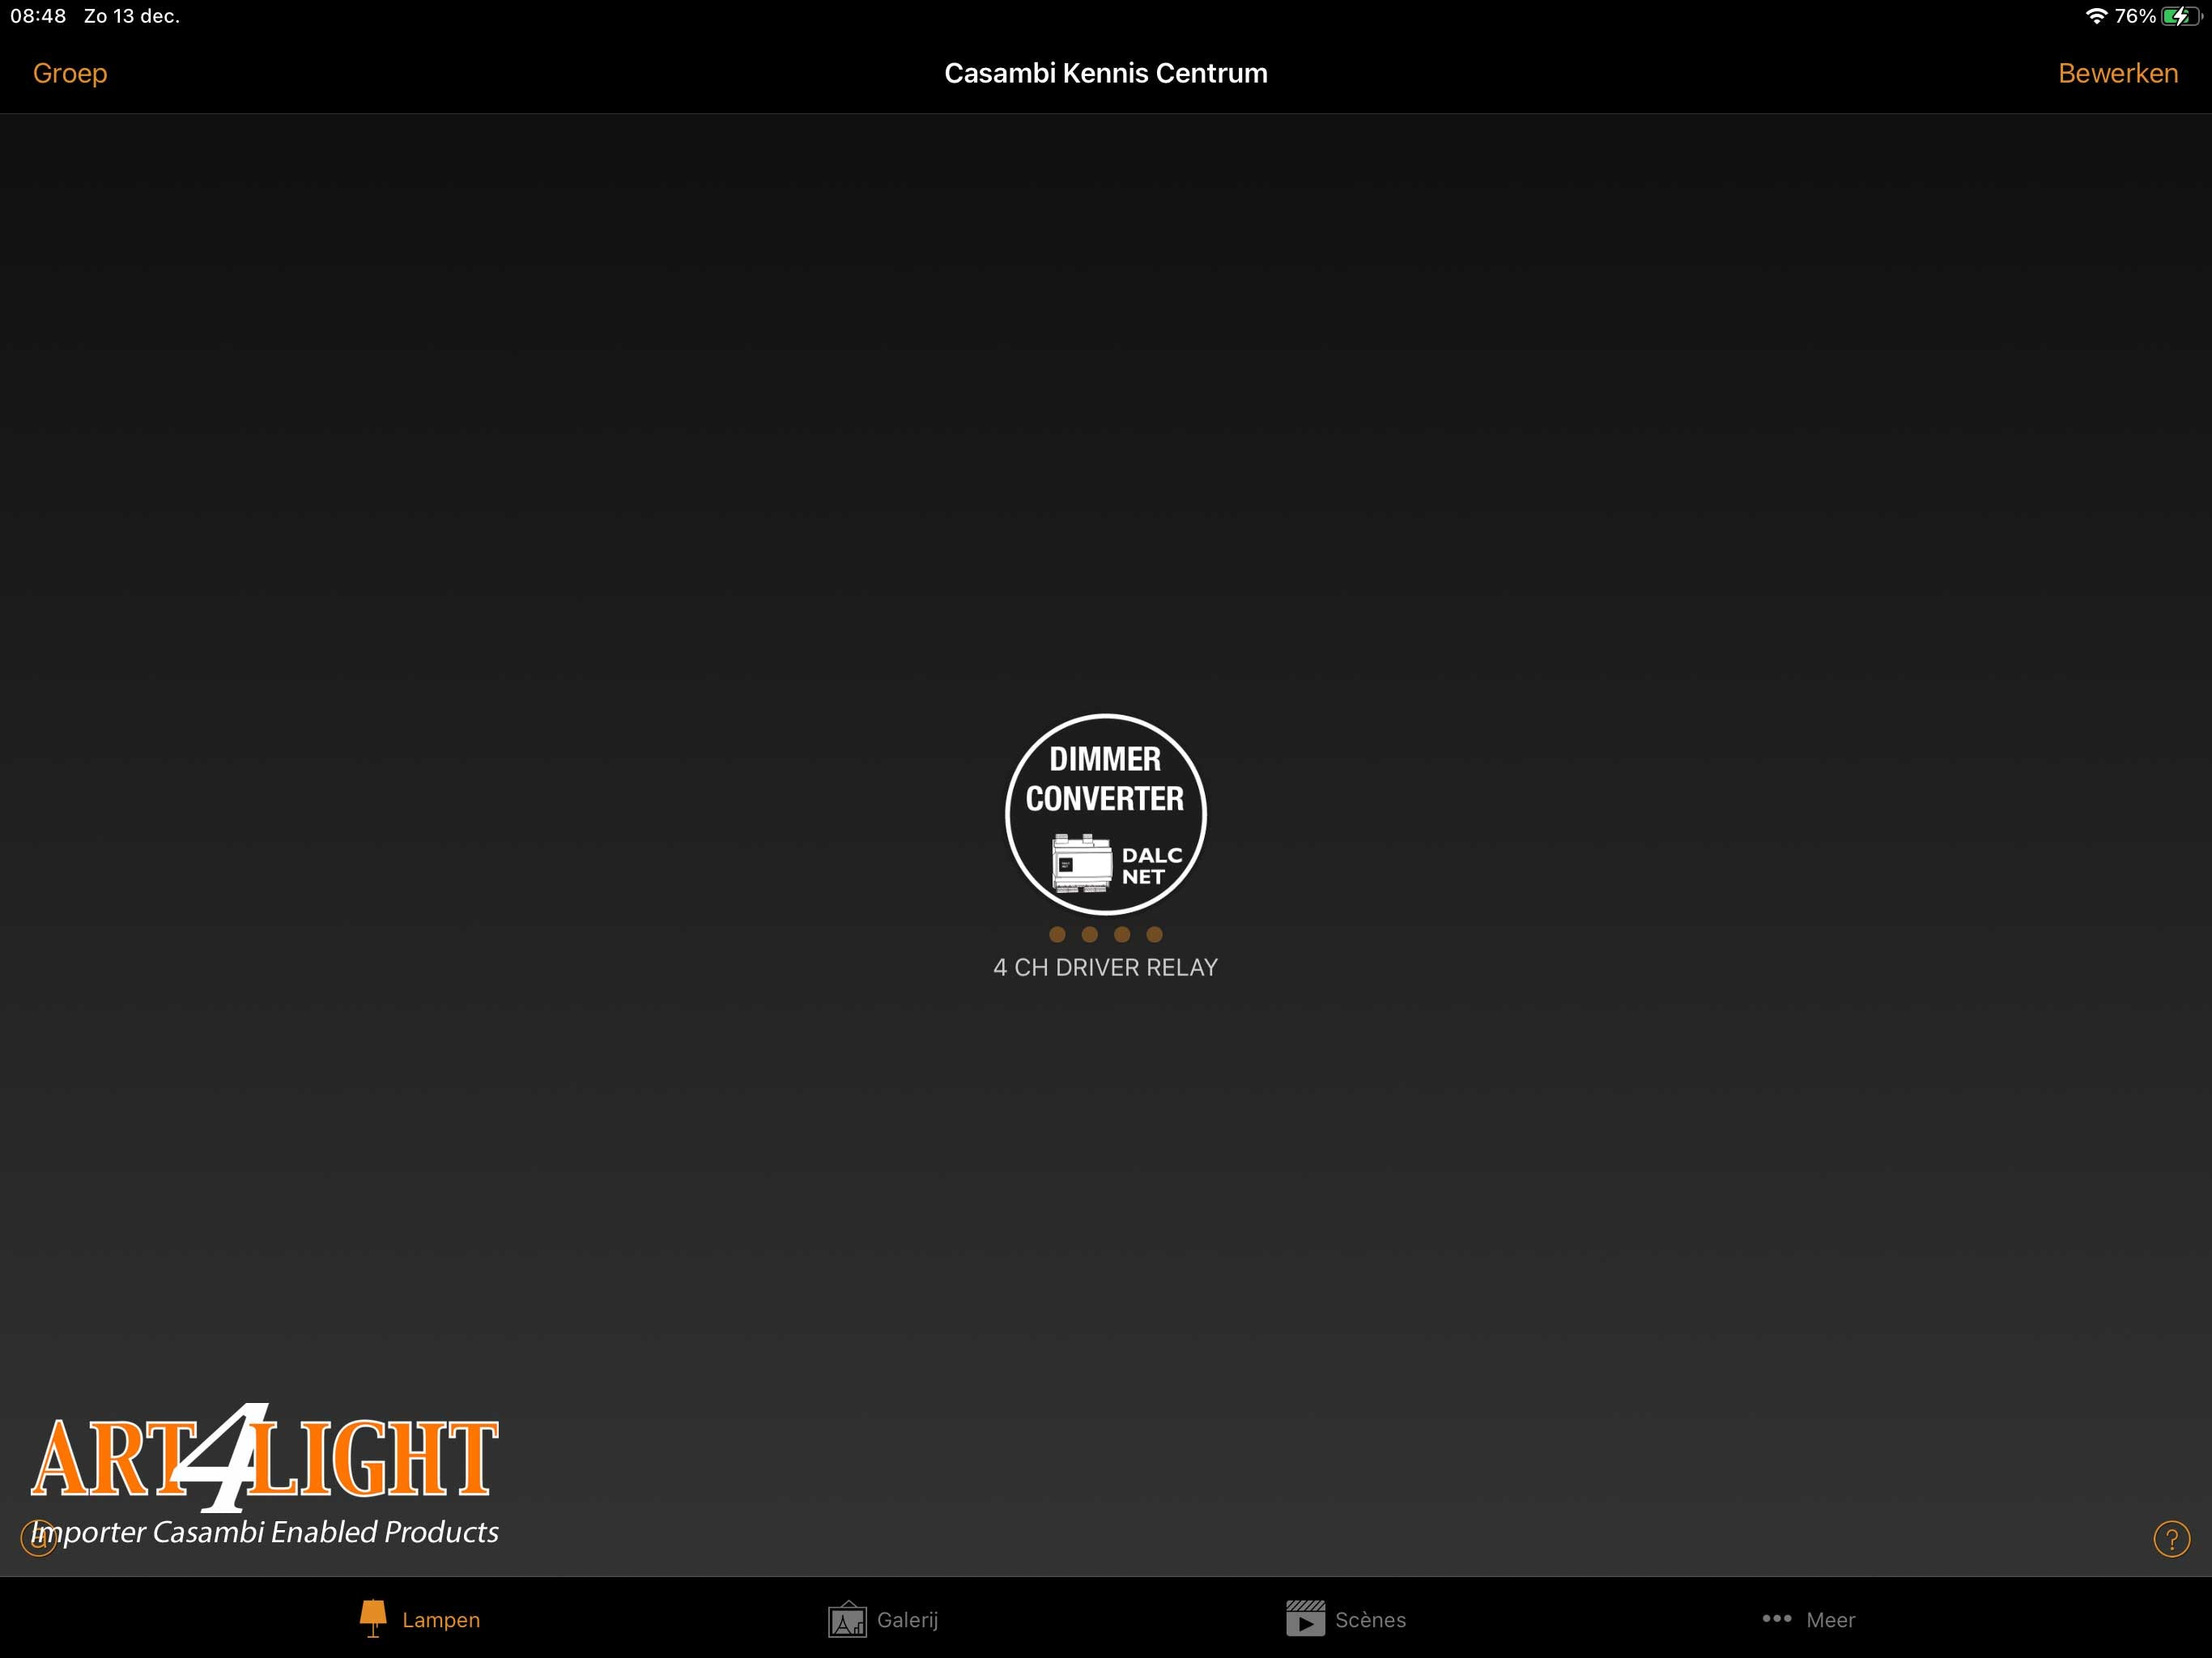 Casambi-APP-View-from-Dalcnet-ADC-1248-4CH